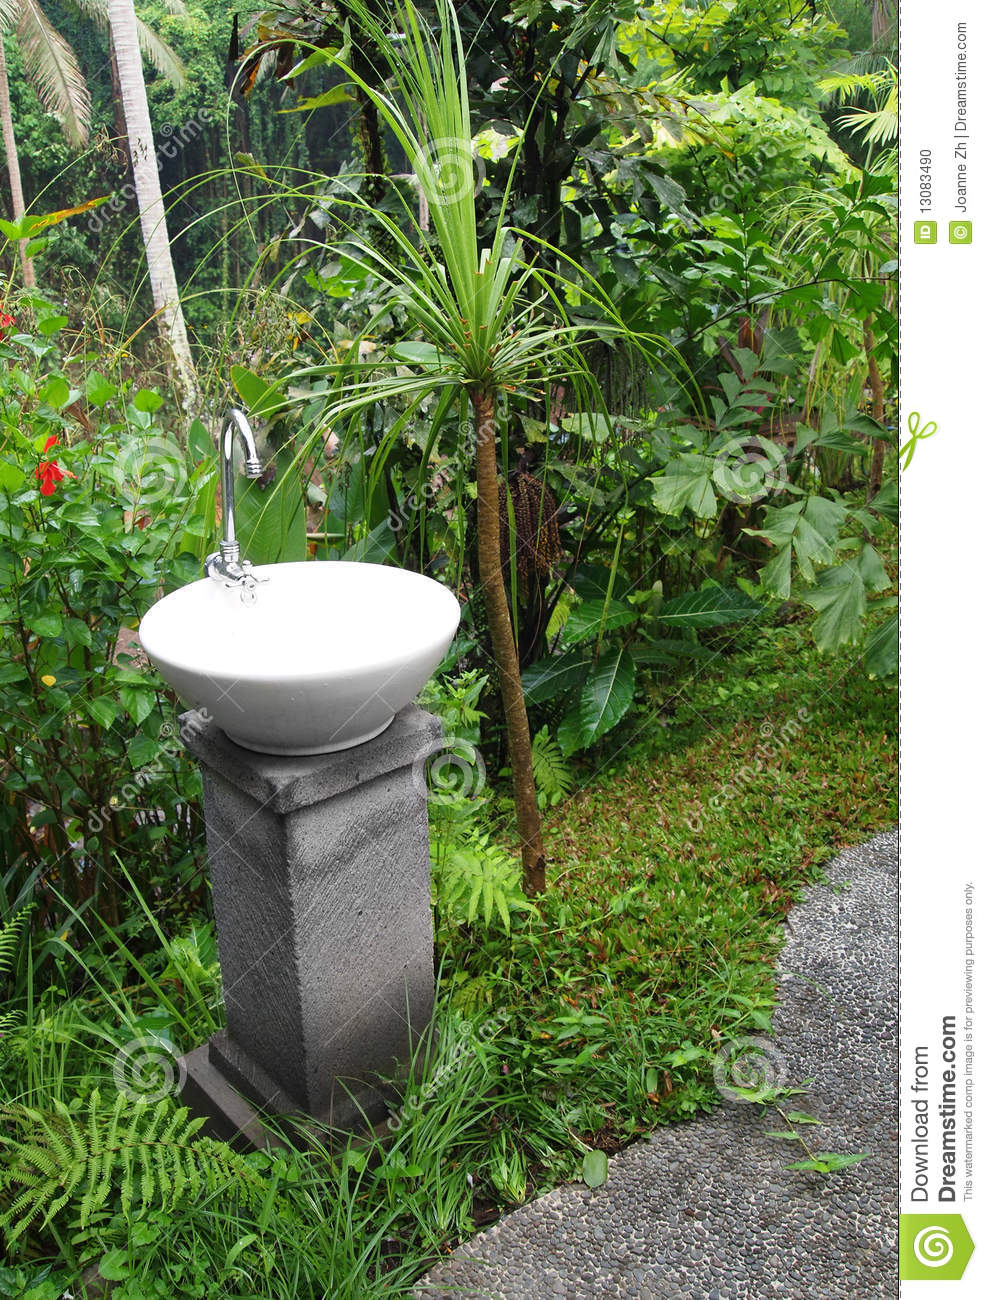 Wash Tub Basin : Wash Basin With Tap, Outdoor Garden Stock Photo - Image: 13083490